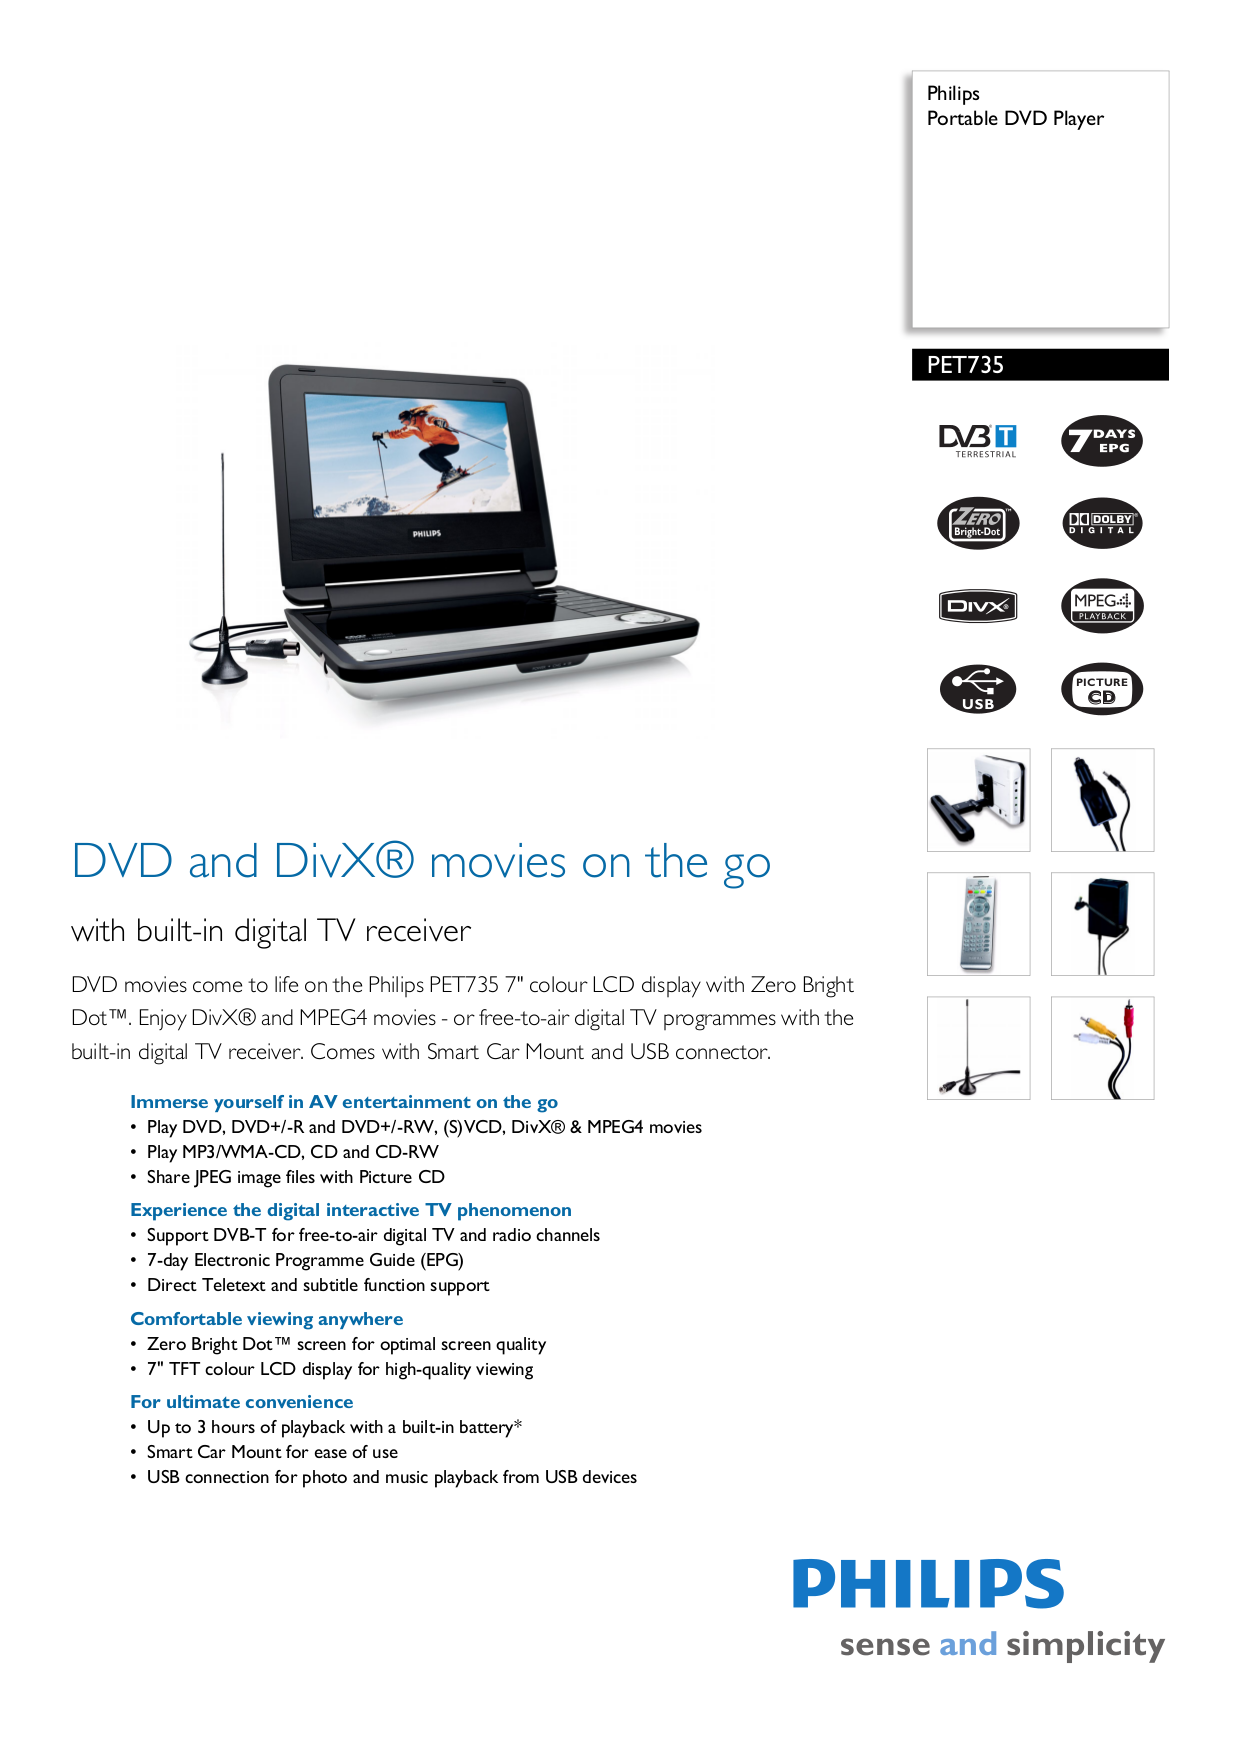 download free pdf for philips pet735 portable dvd player manual rh umlib com philips dvd player dvp3142 manual philips dvd player dvp2880 manual